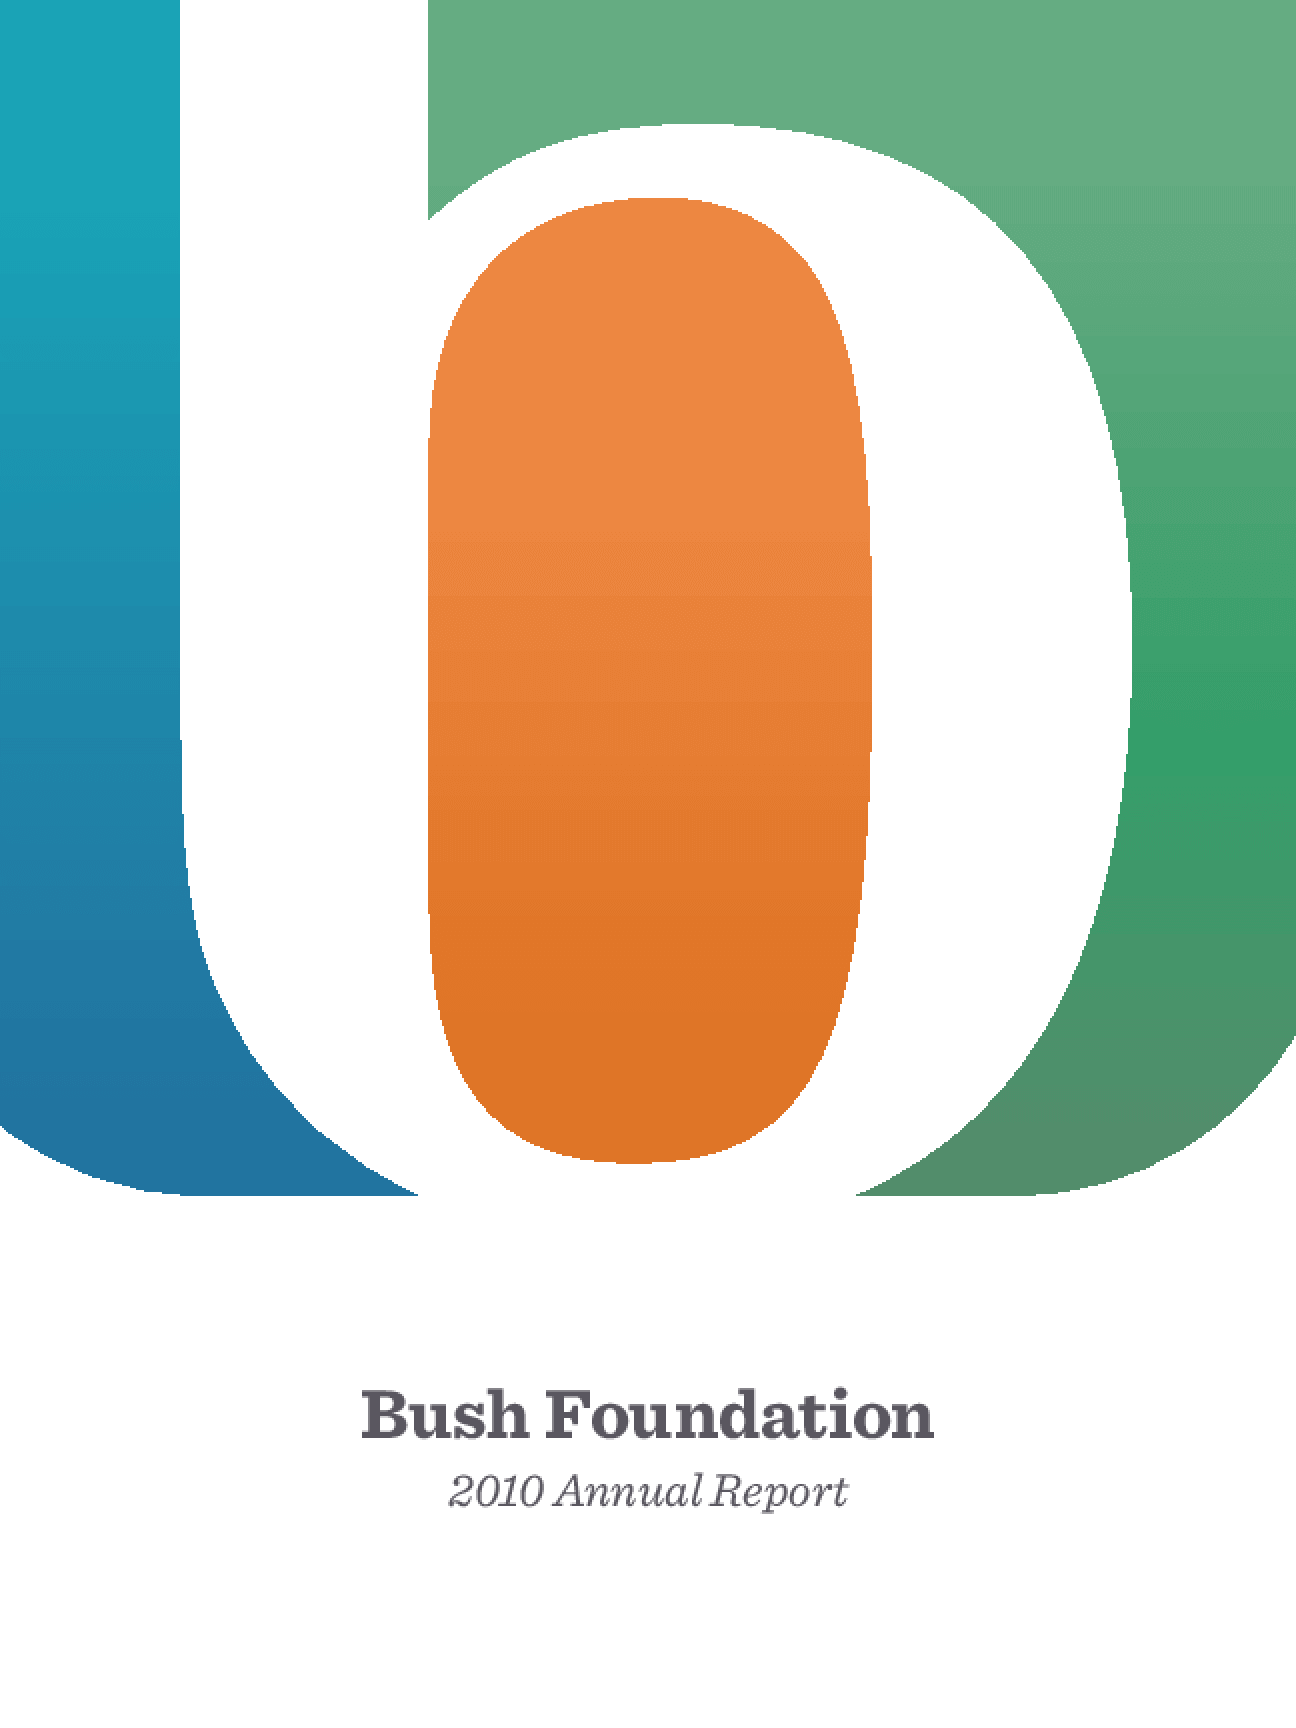 Bush Foundation 2010 Annual Report